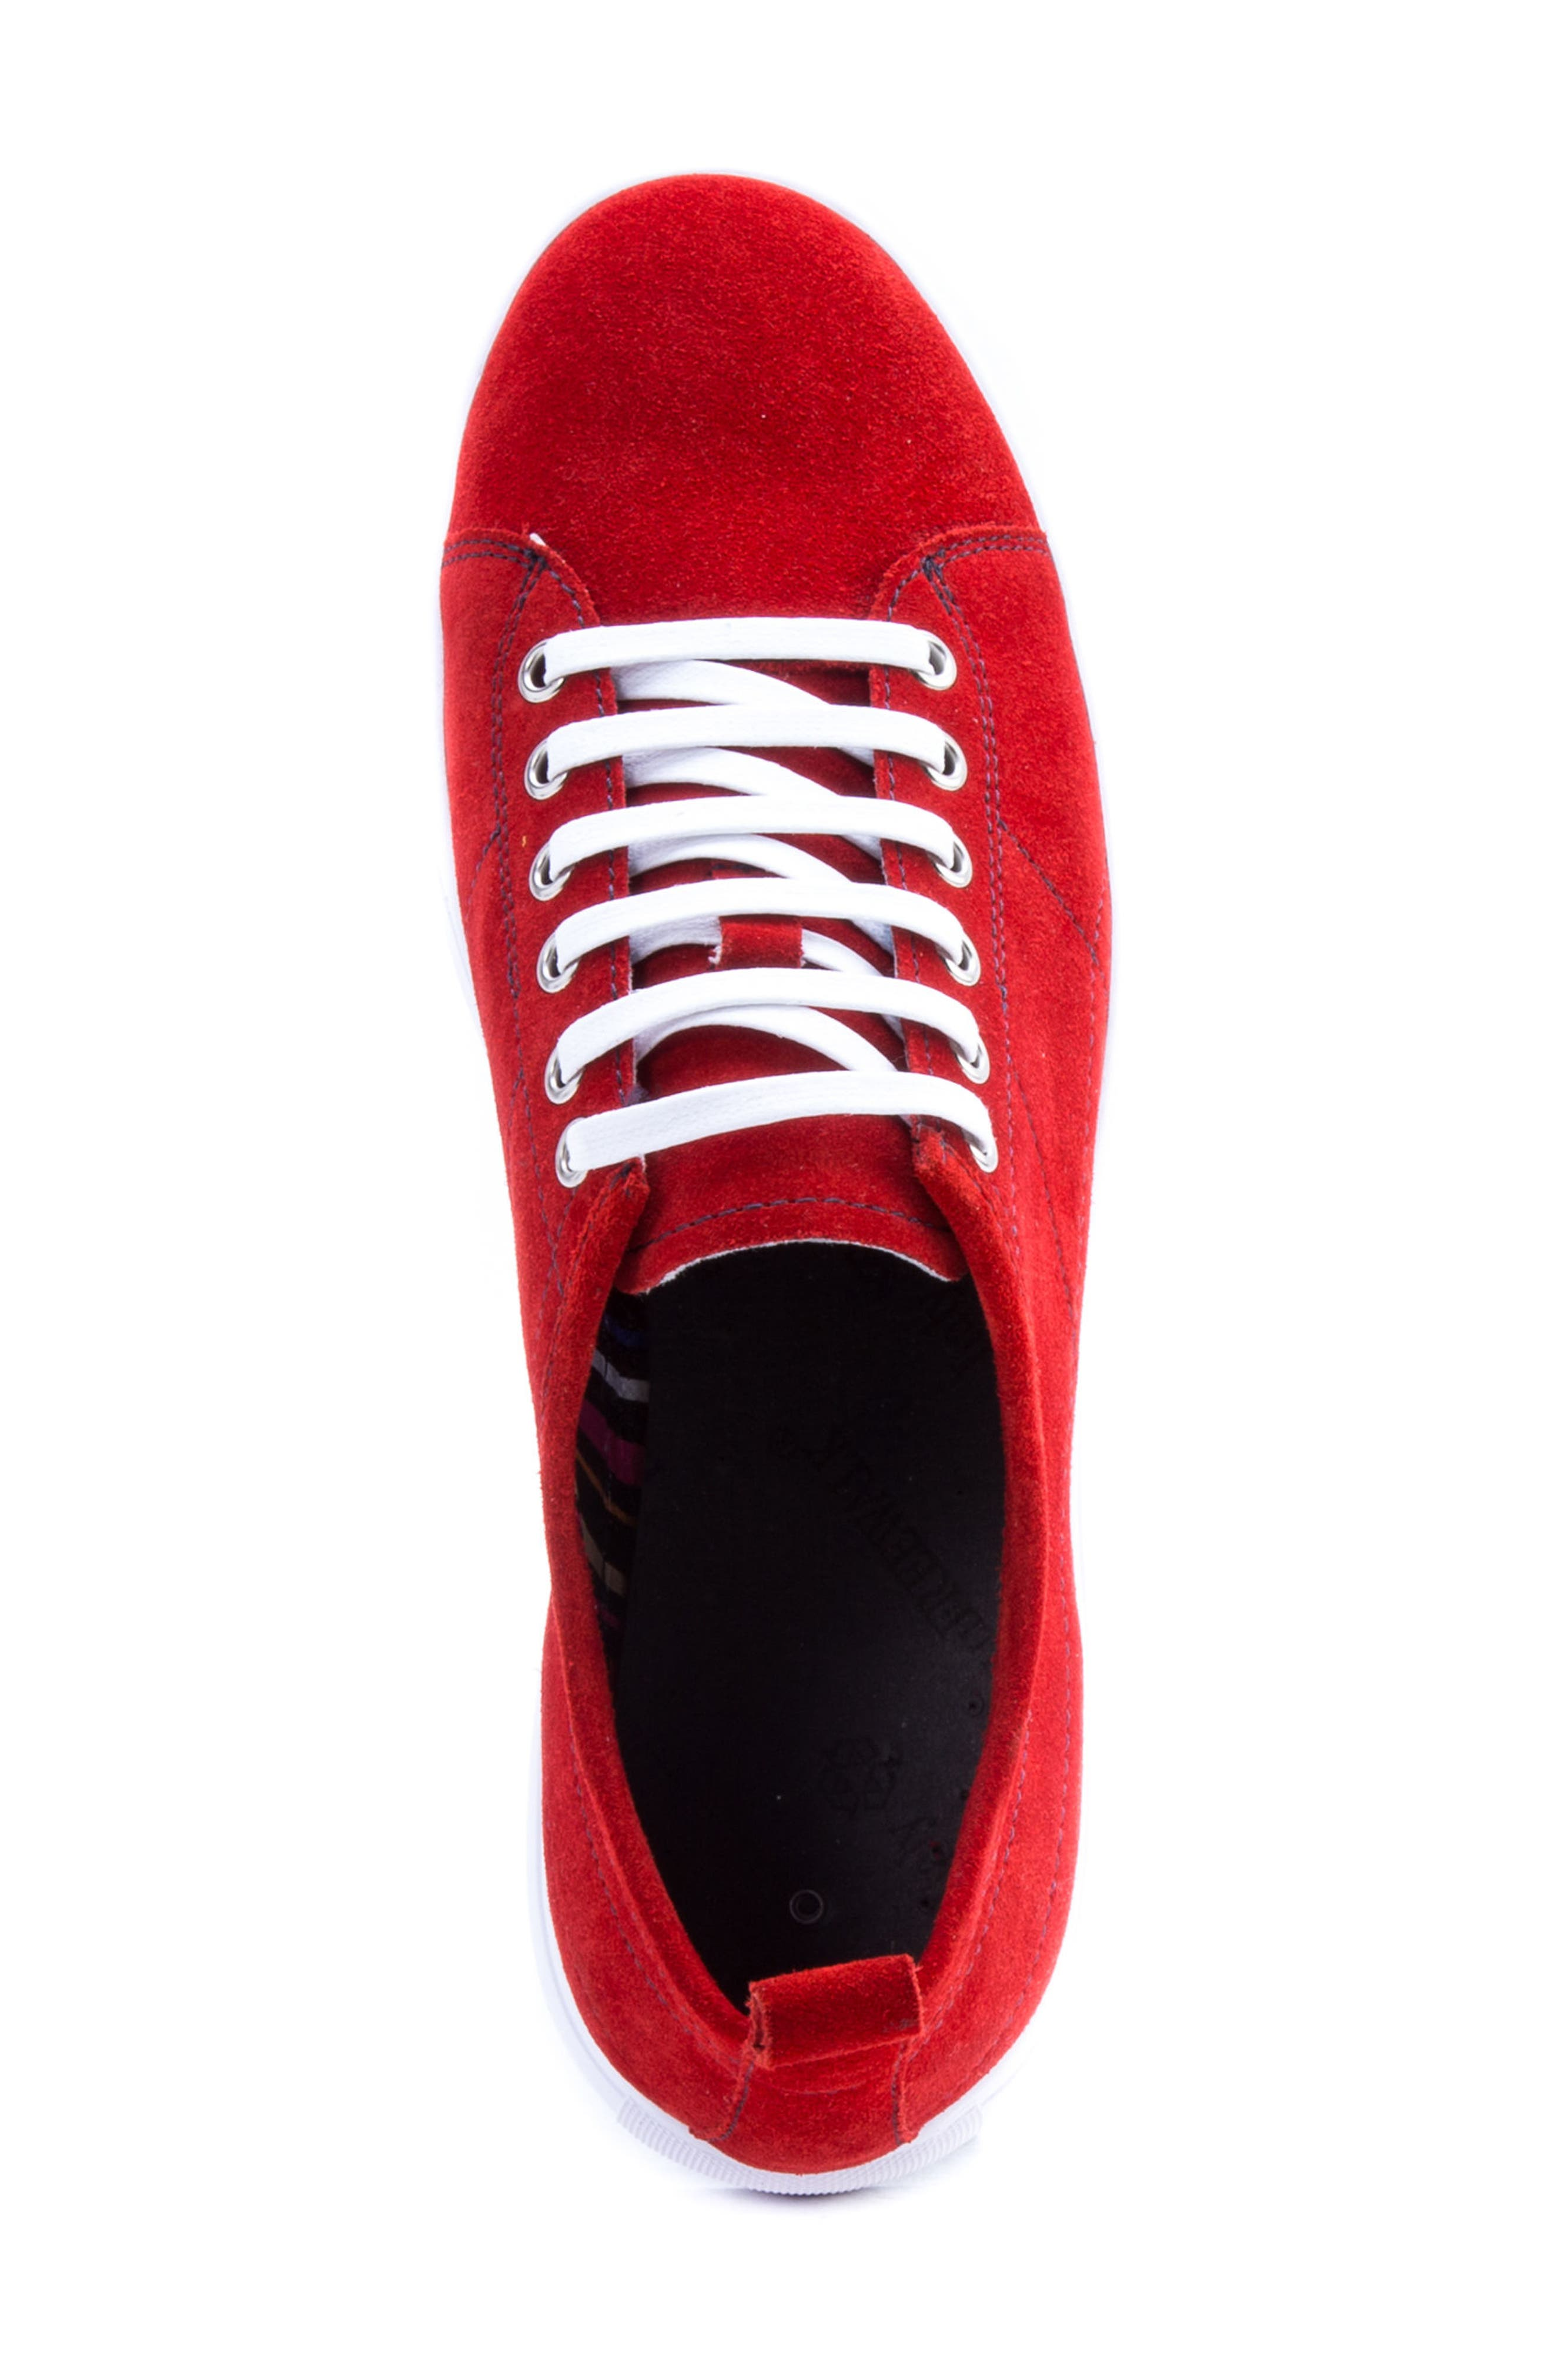 Ernesto Low Top Sneaker,                             Alternate thumbnail 5, color,                             Red Suede